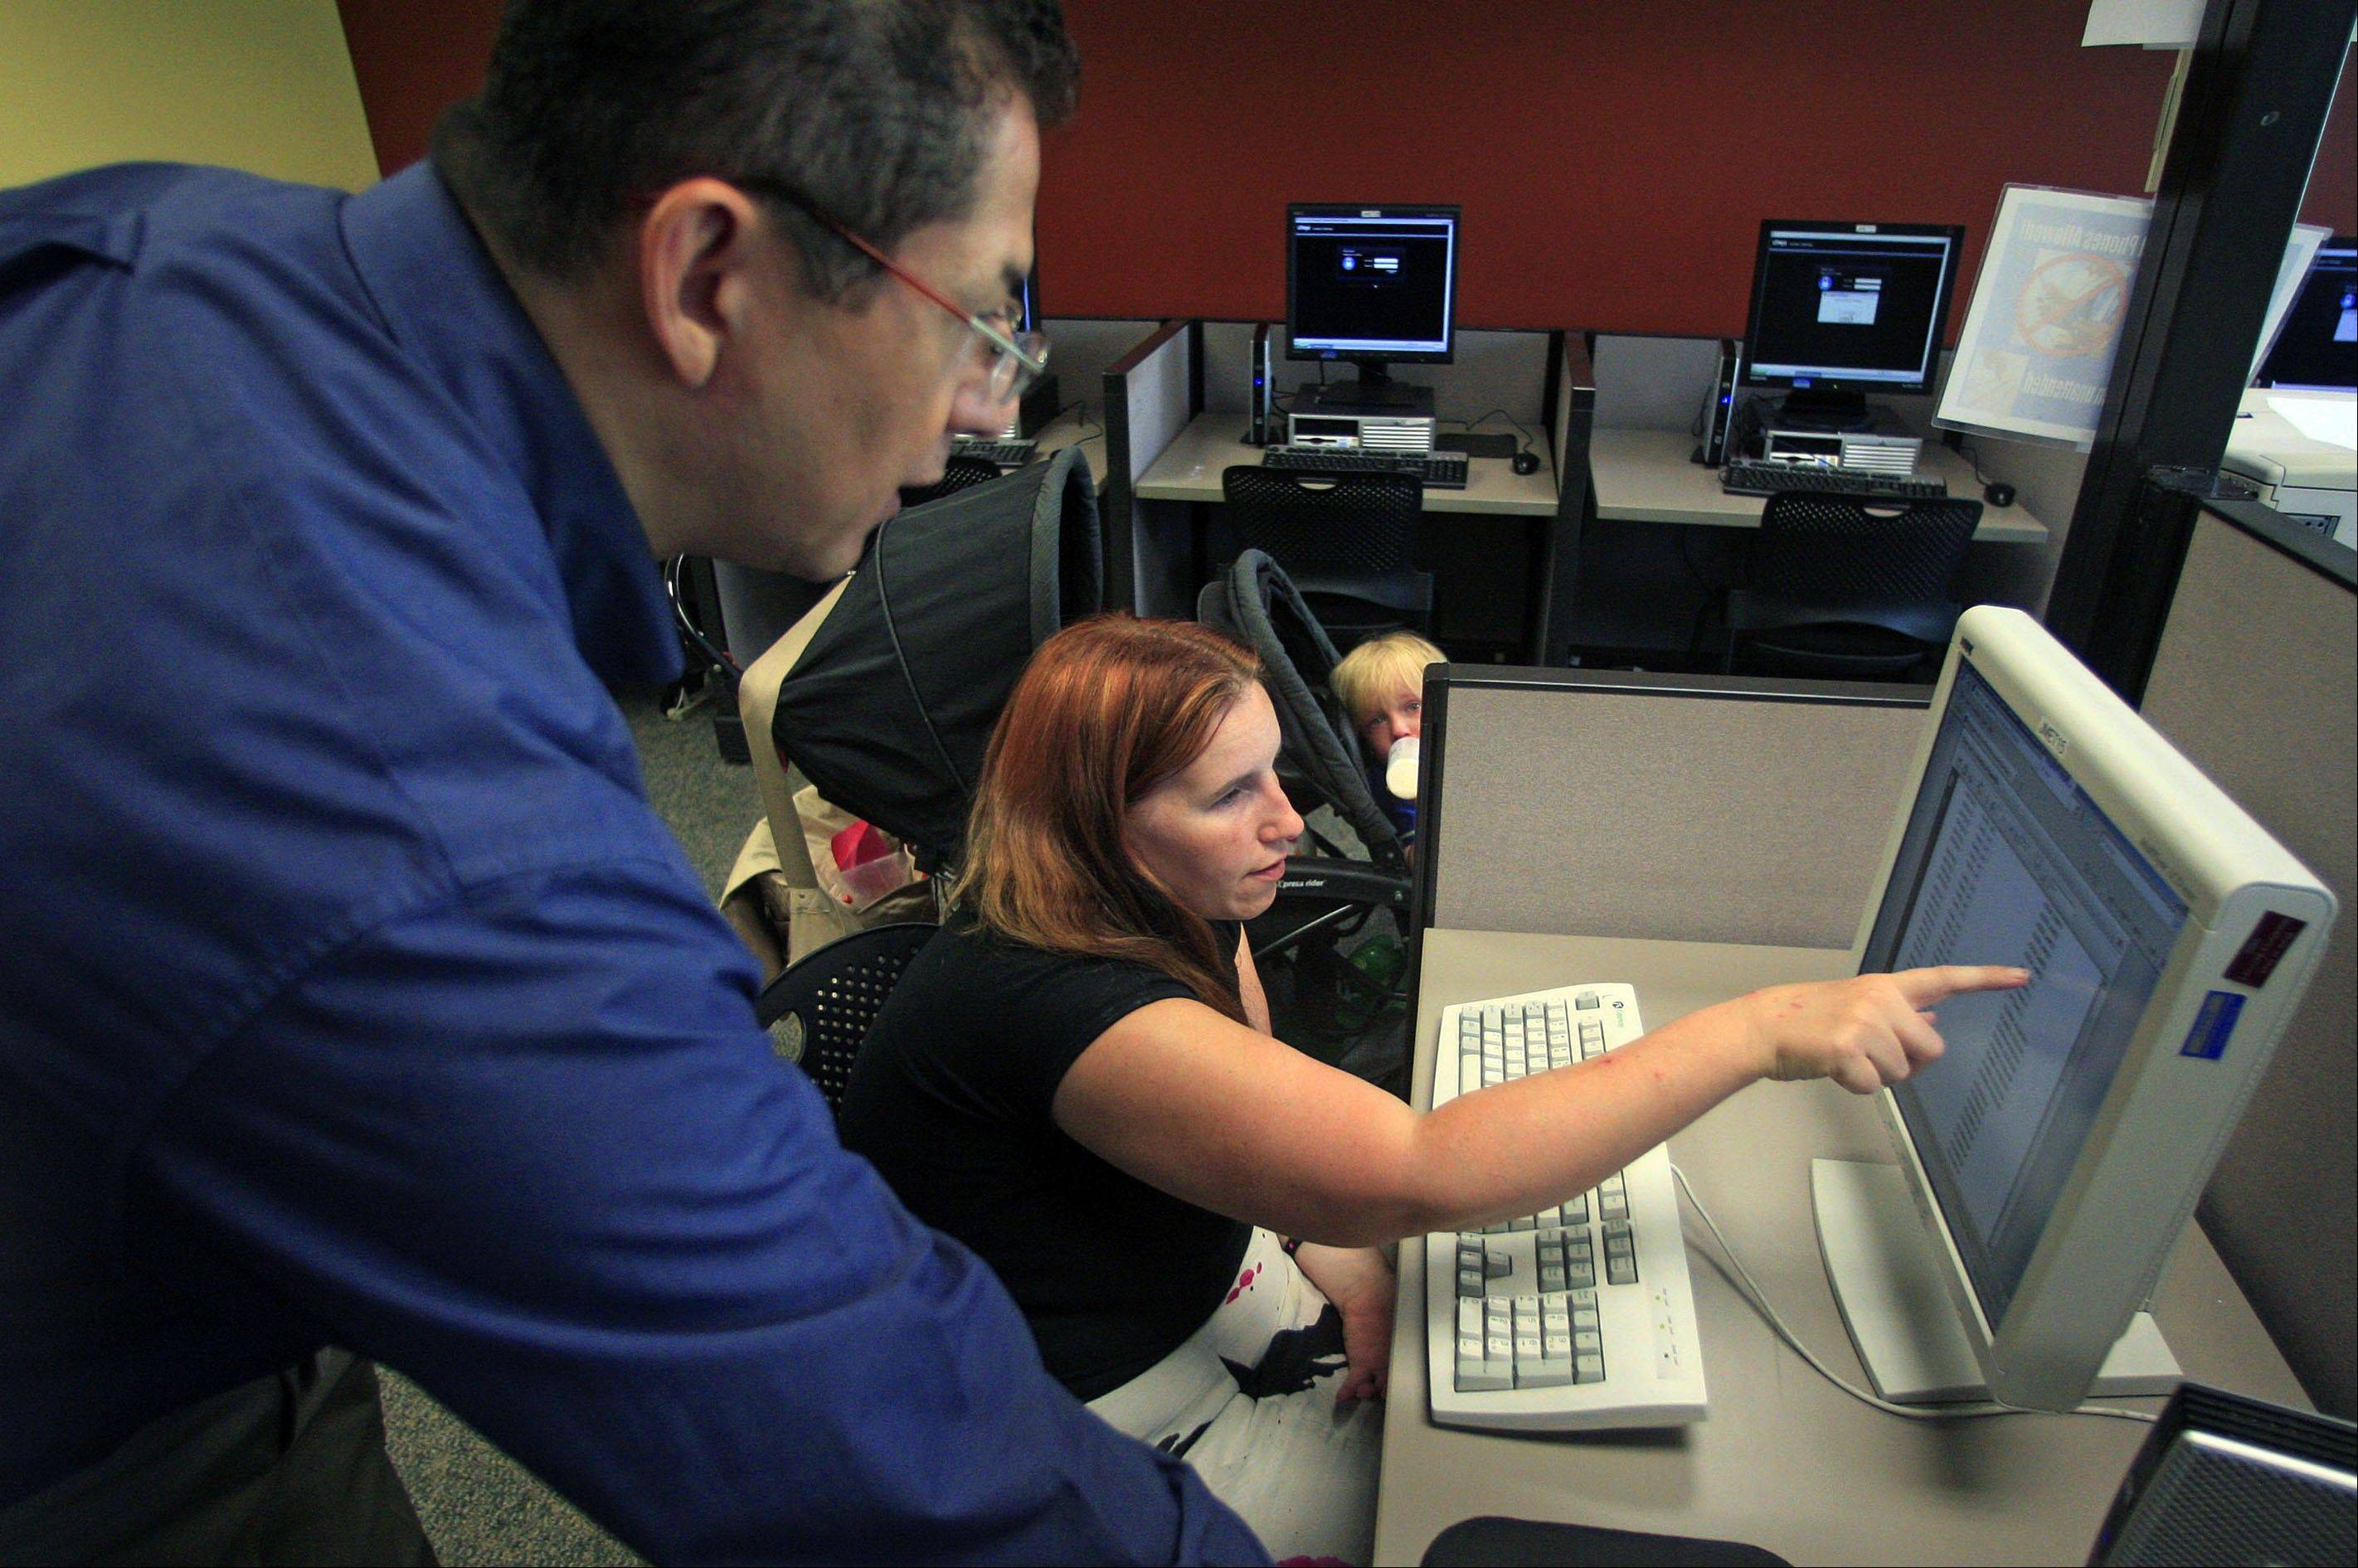 Associated Press/Sept. 21, 2012Deanna Aguilera, 30, of Salt Lake City, right, receives assistance from employment counselor Frank Trivino while job searching at Workforce Services, in Salt Lake City.